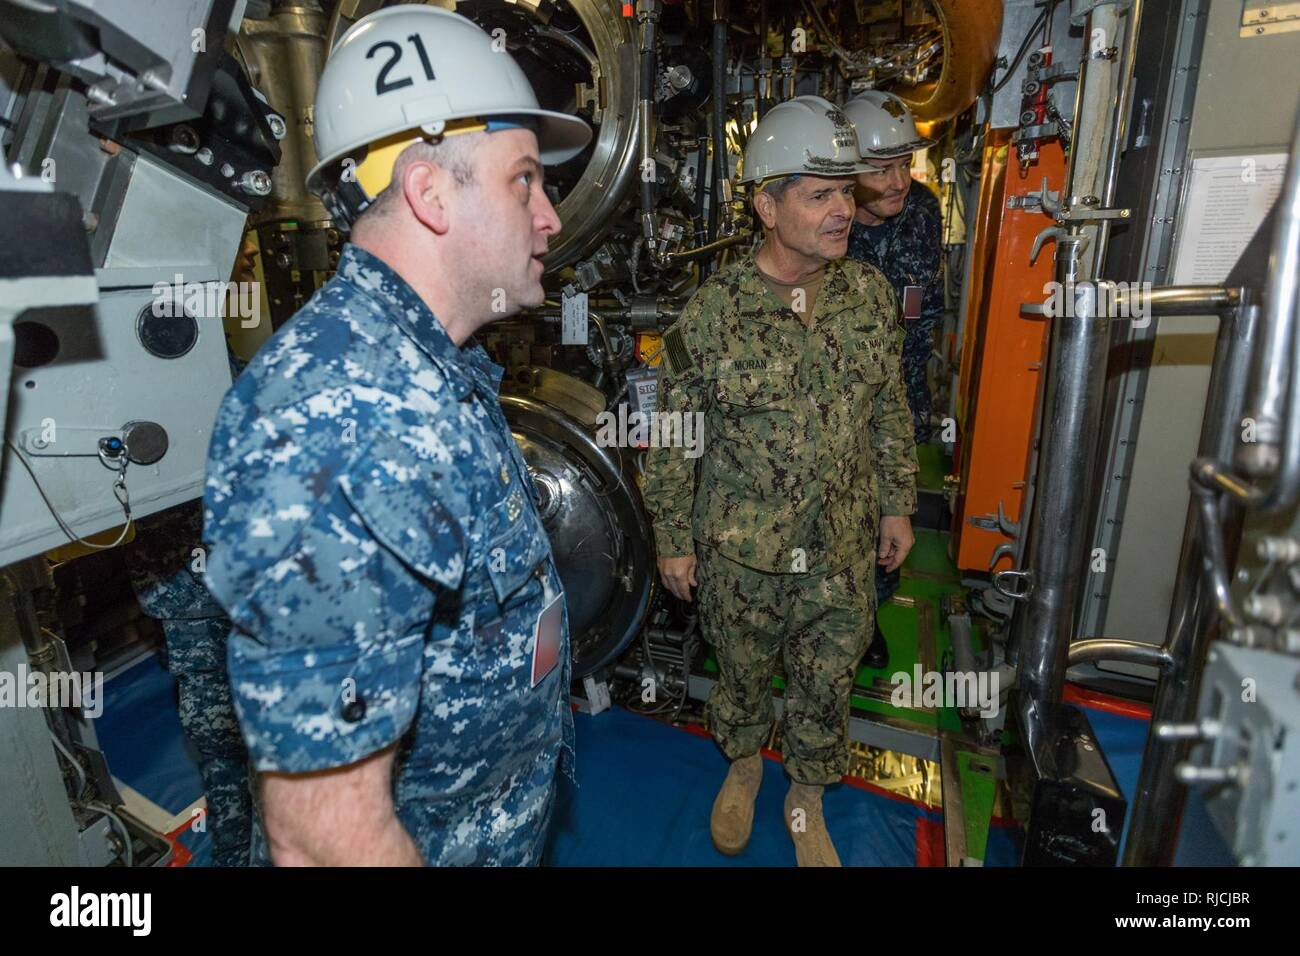 BREMERTON (Jan. 12, 2018) Cmdr. Christopher George, commanding officer USS Seawolf (SSN 21) gives tour to Vice Chief of Naval Operations (VCNO) Adm. Moran and Commander, Submarine Group 9, Rear Adm. Blake Converse in Bremerton, Wash. During his visit, Moran toured the Seawolf-class fast-attack submarine USS Seawolf (SSN 21) and met with Sailors and Department of Defense civilians. - Stock Image